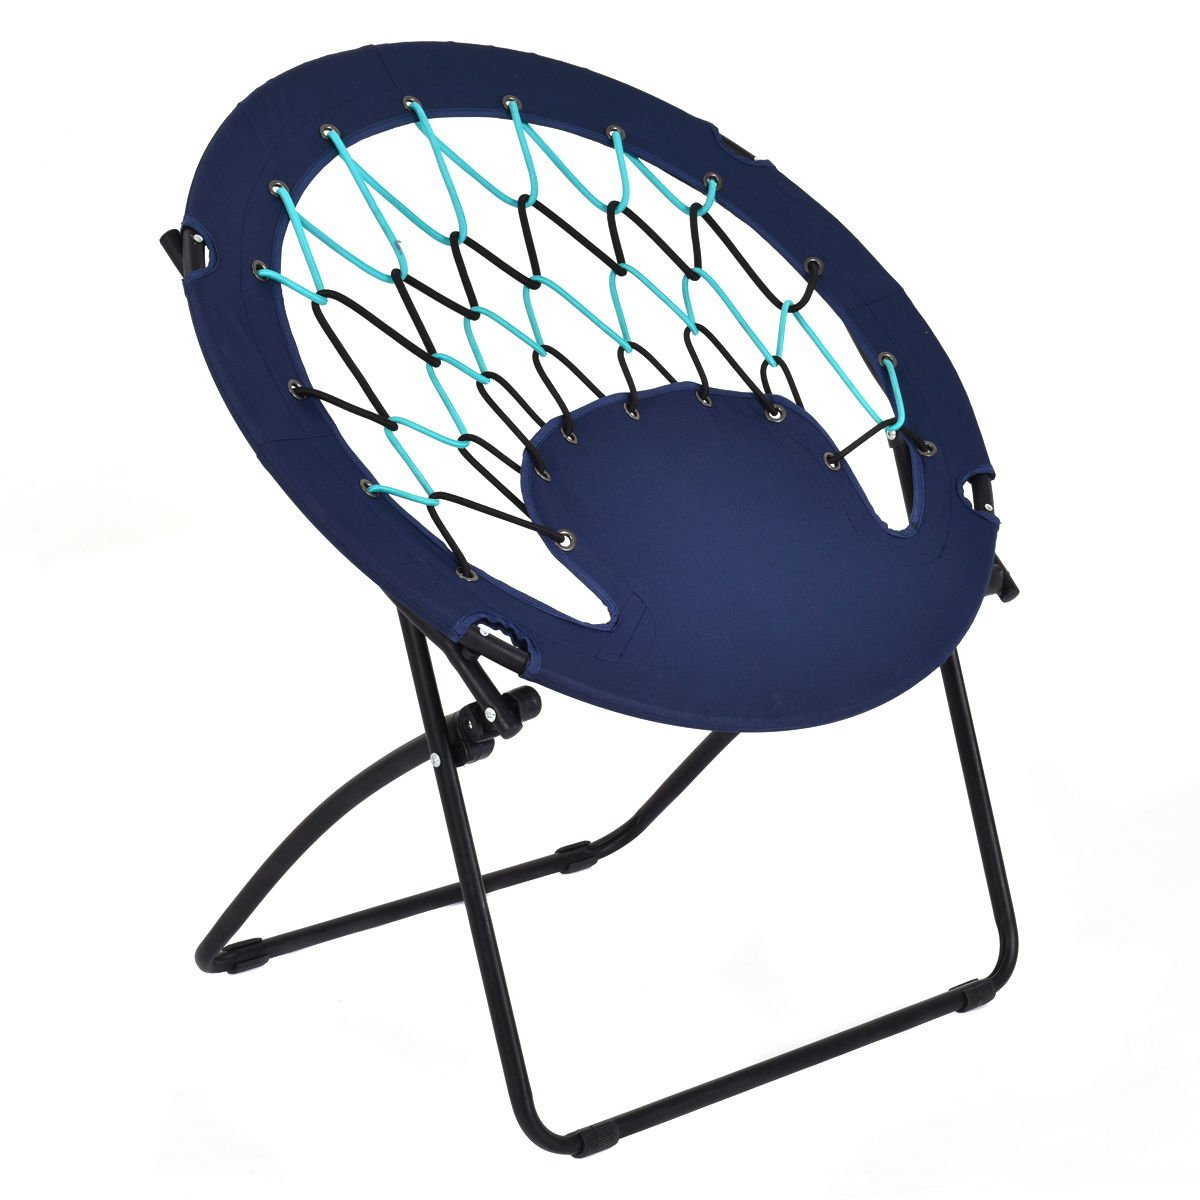 Amazon.com: Giantex Folding Round Bungee Chair Steel Frame Camping ...